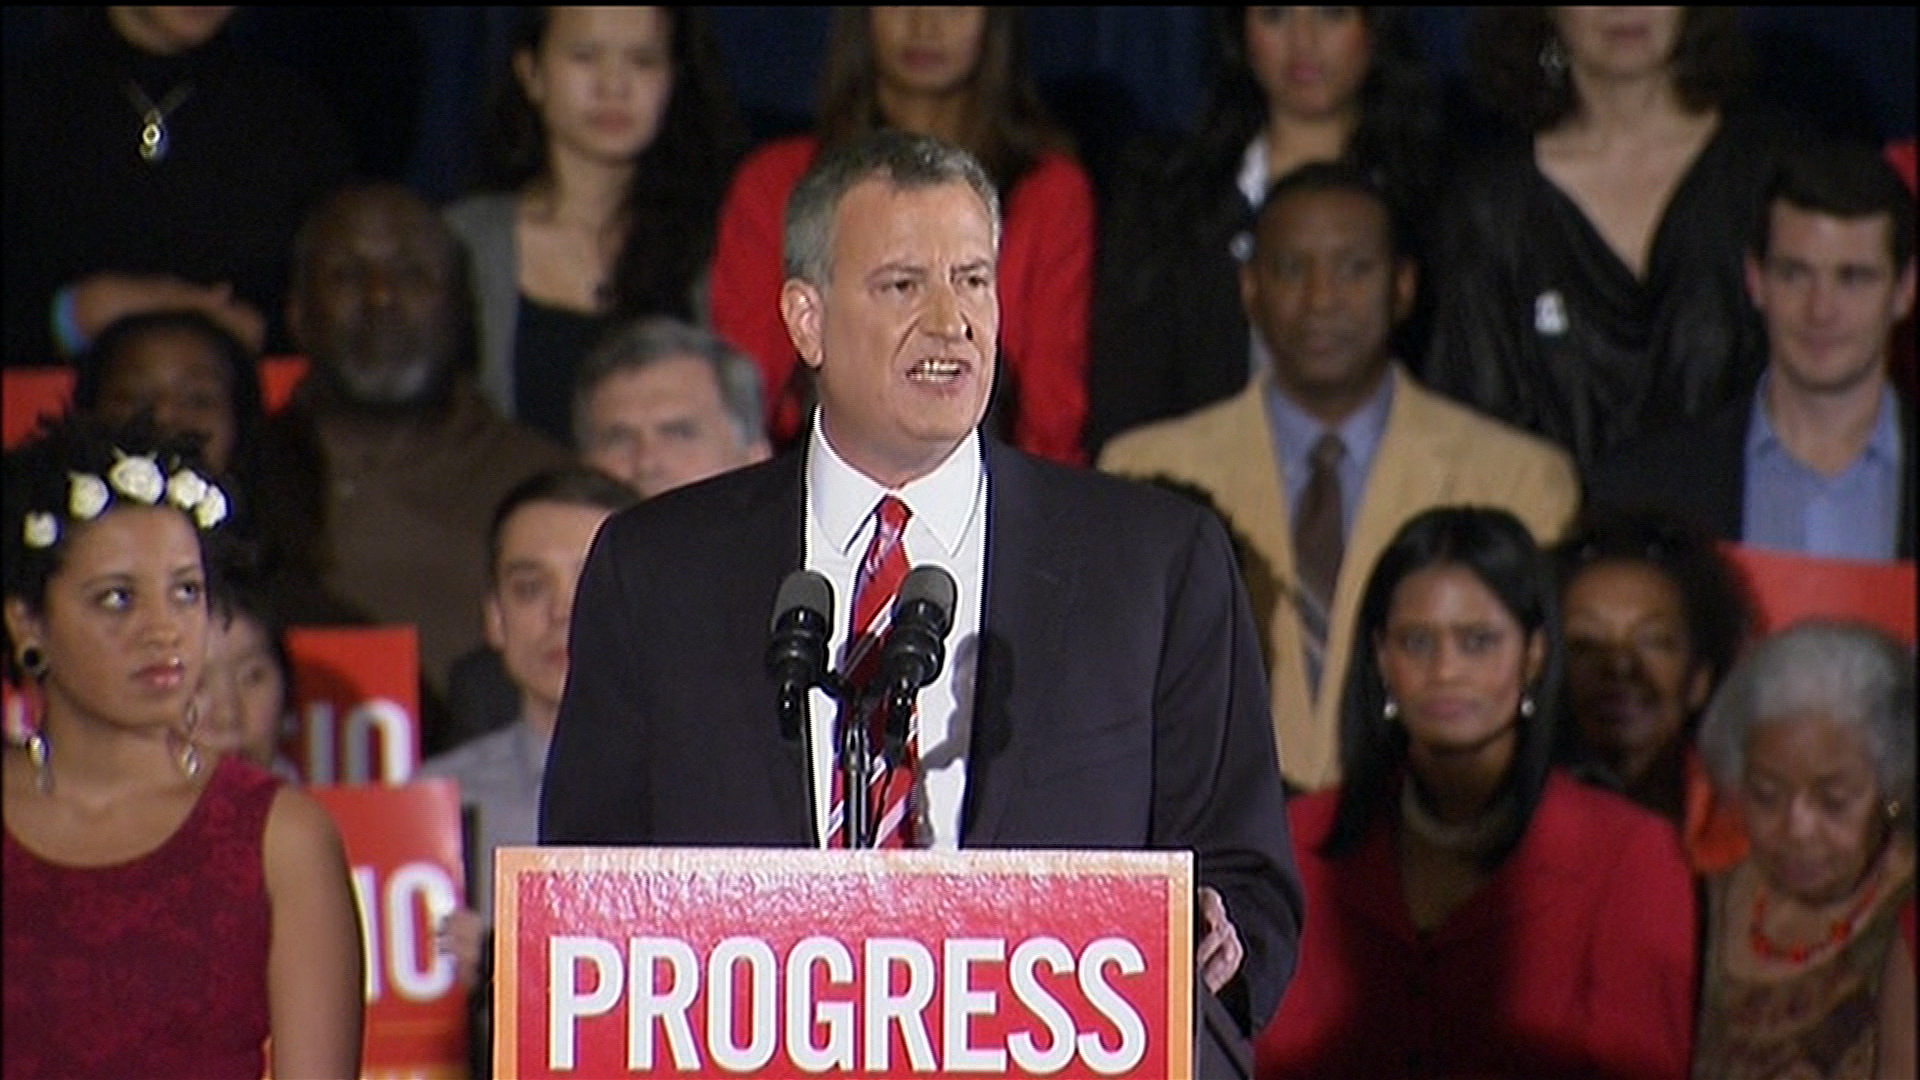 De Blasio turns New York progressive